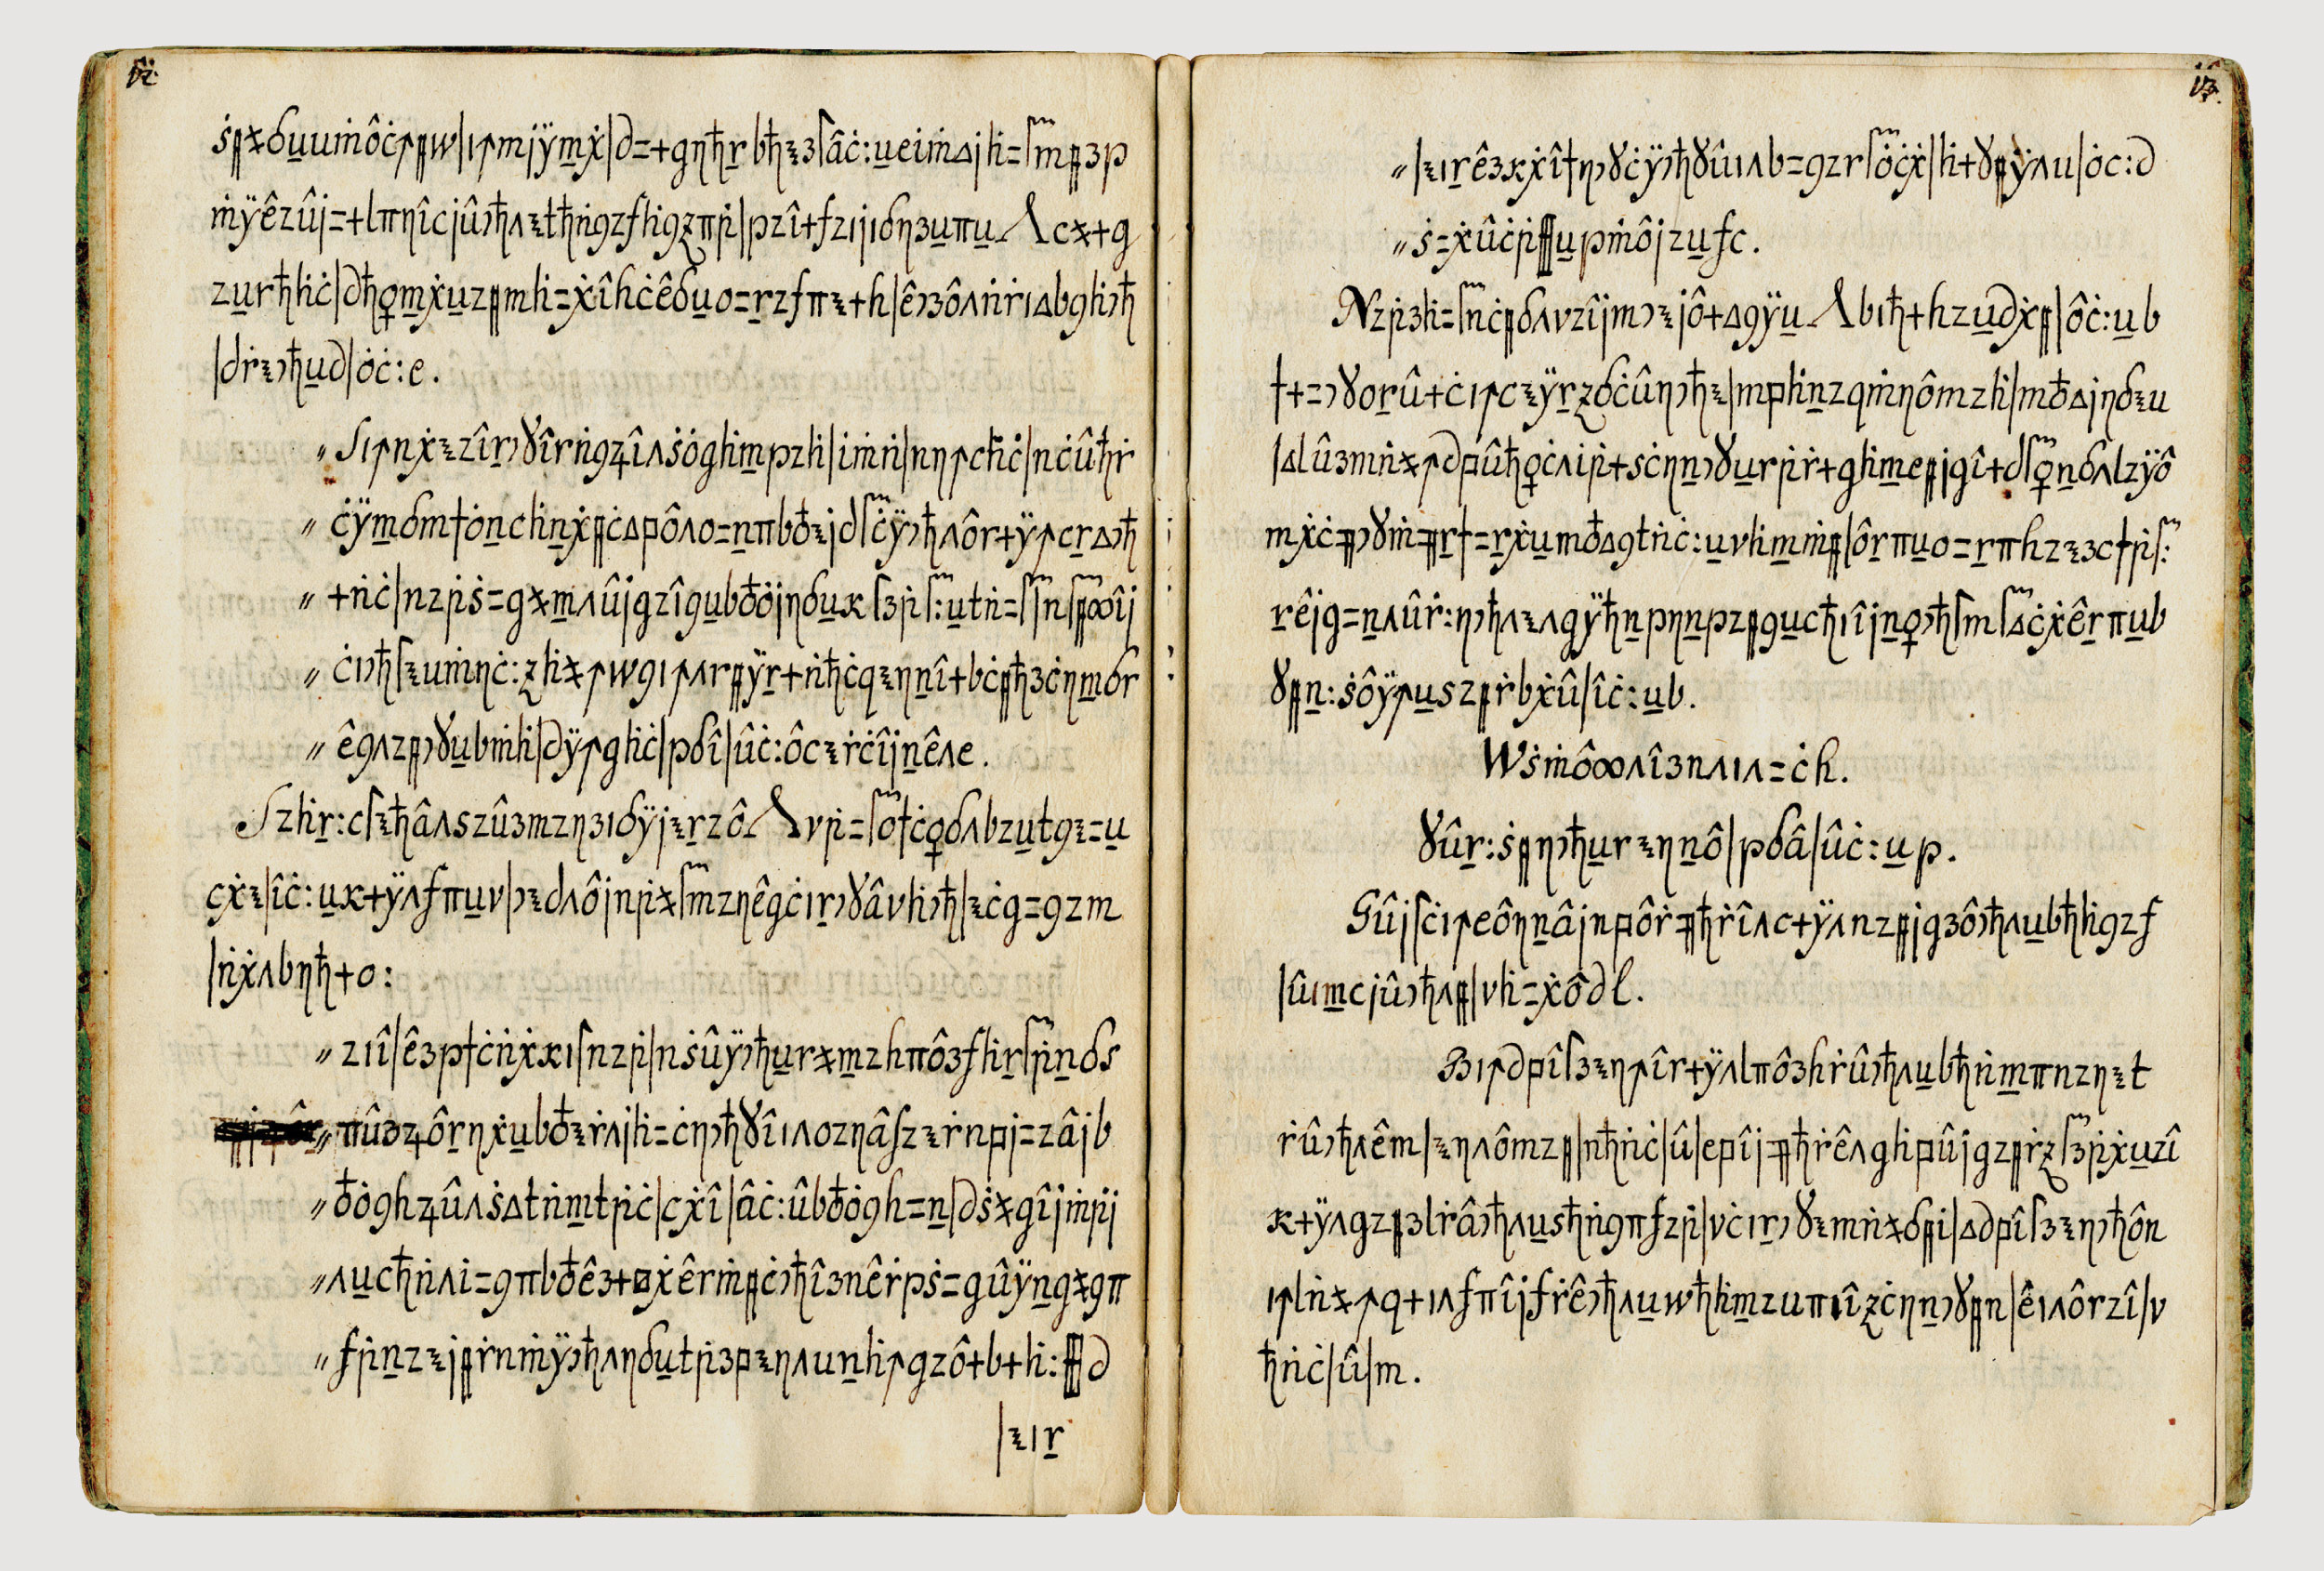 How Machine Translation Helped Discover A Secret Society